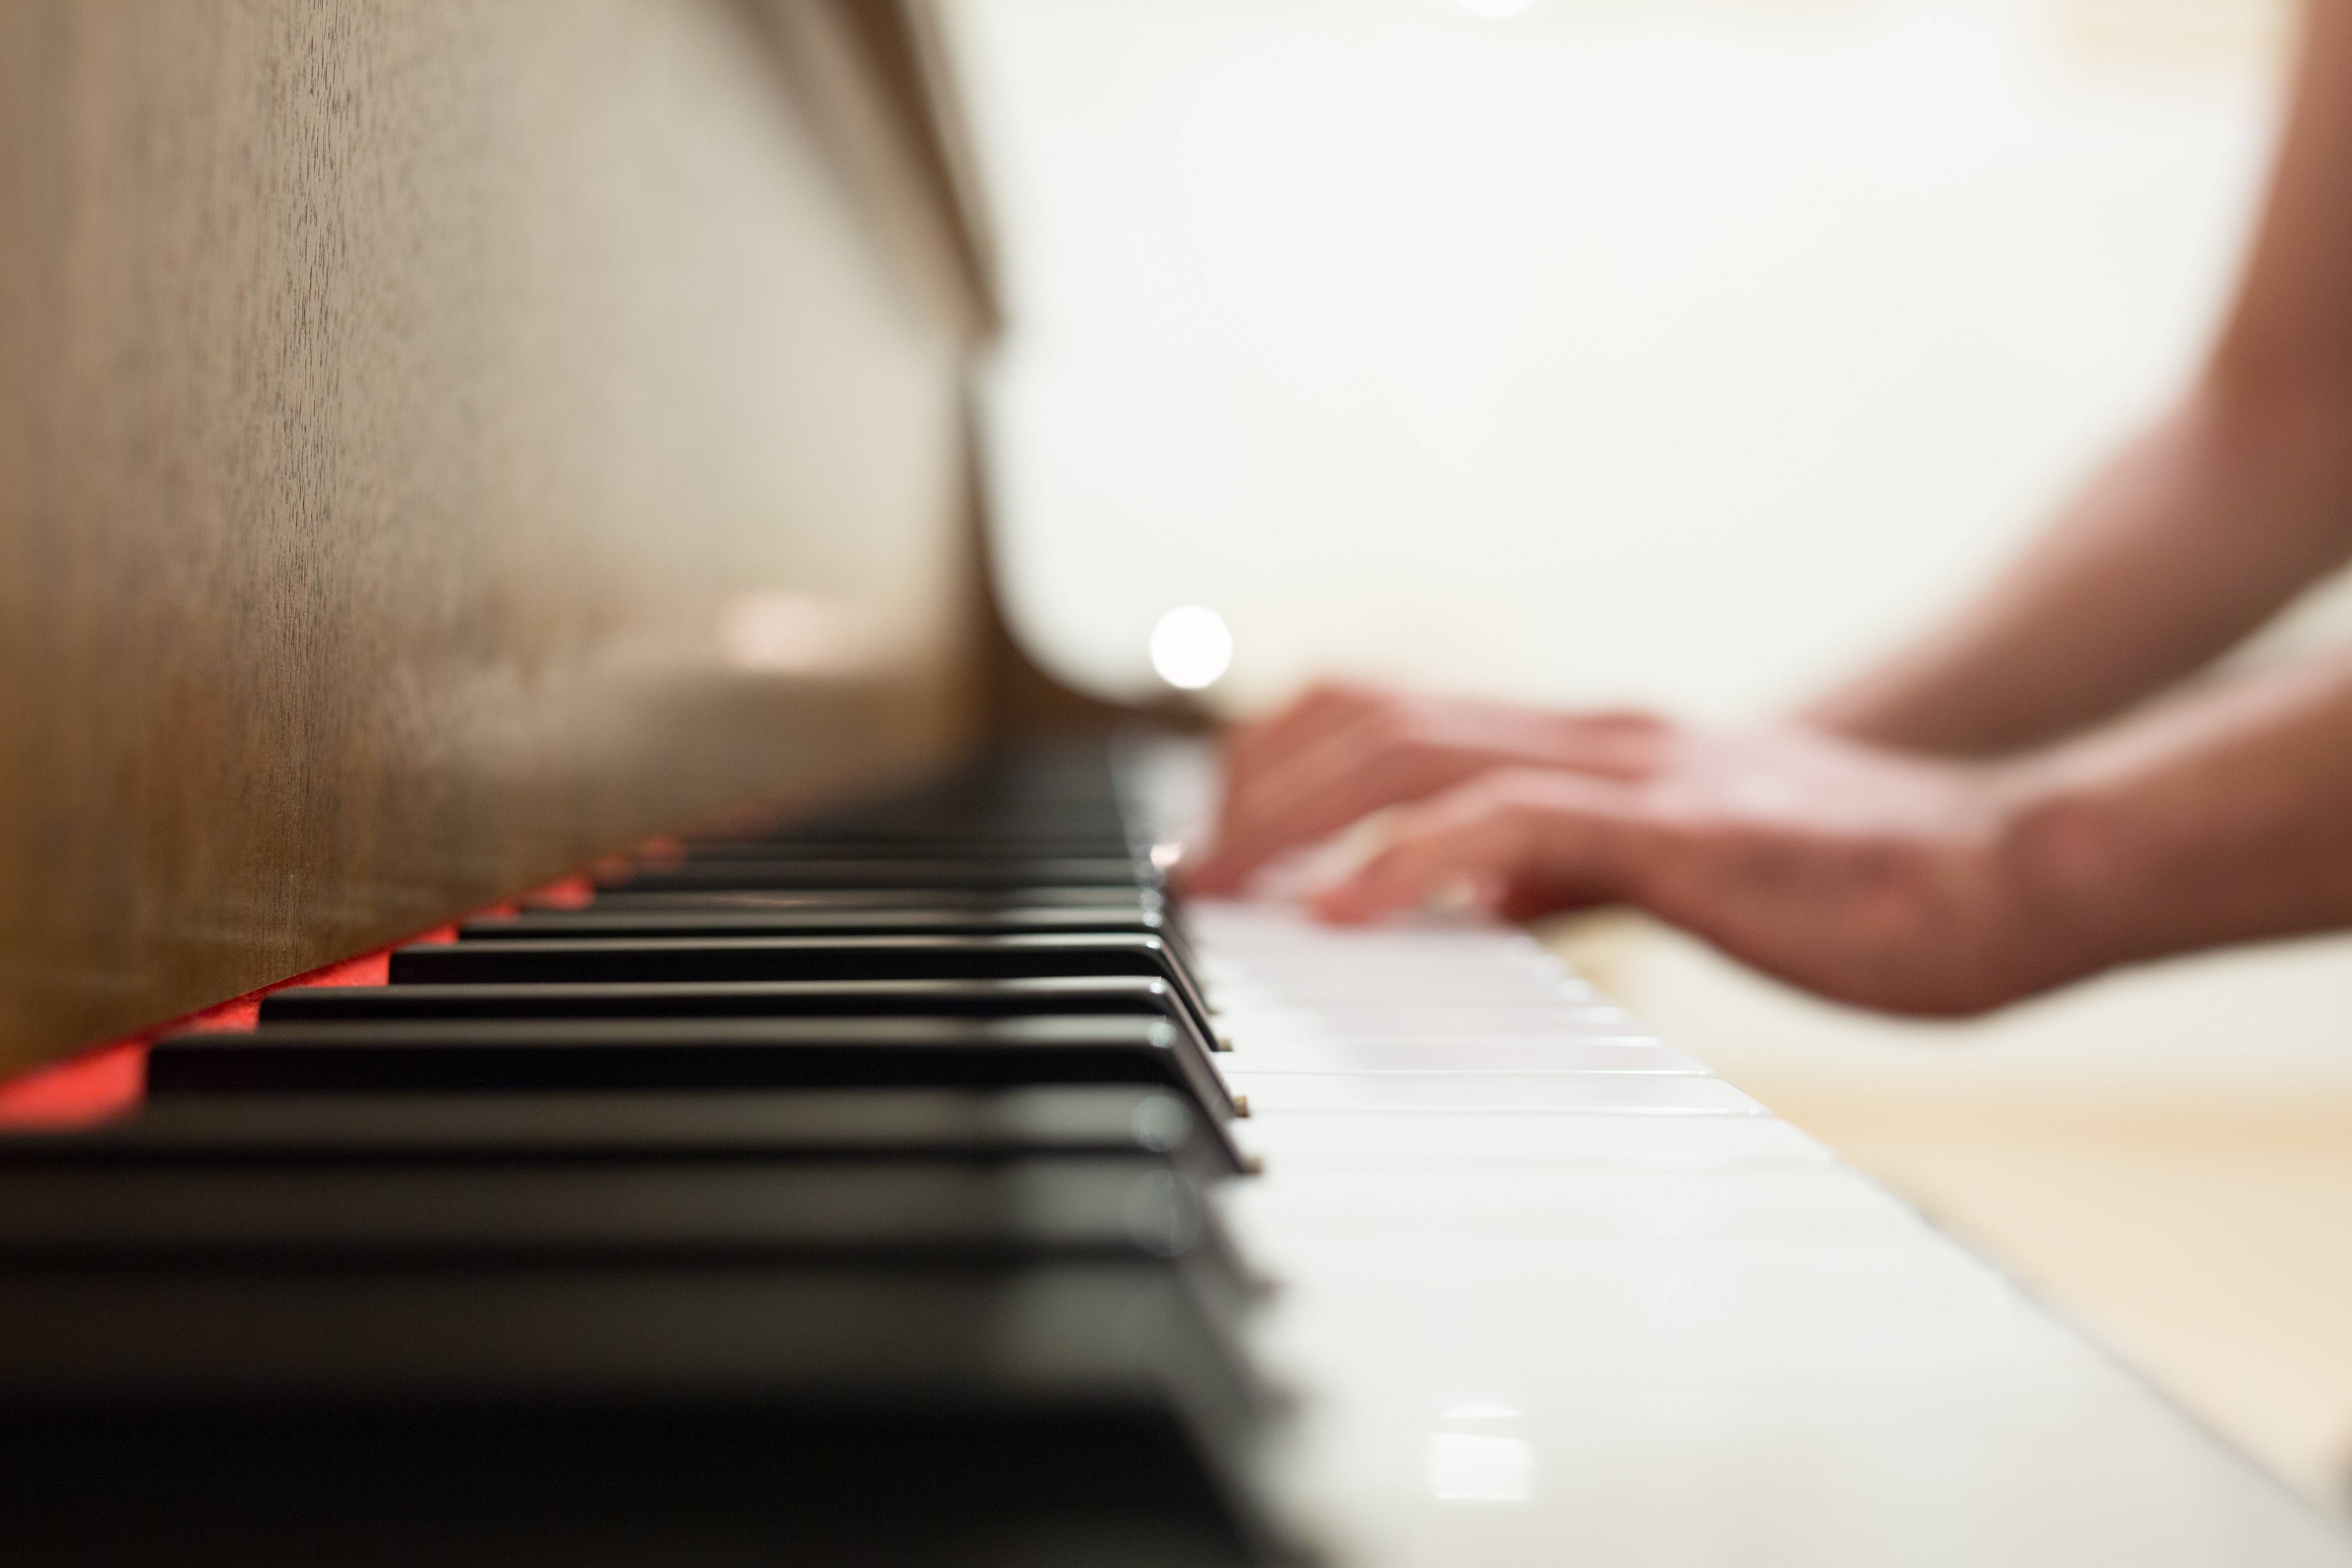 Person Playing Piano by Negative Space